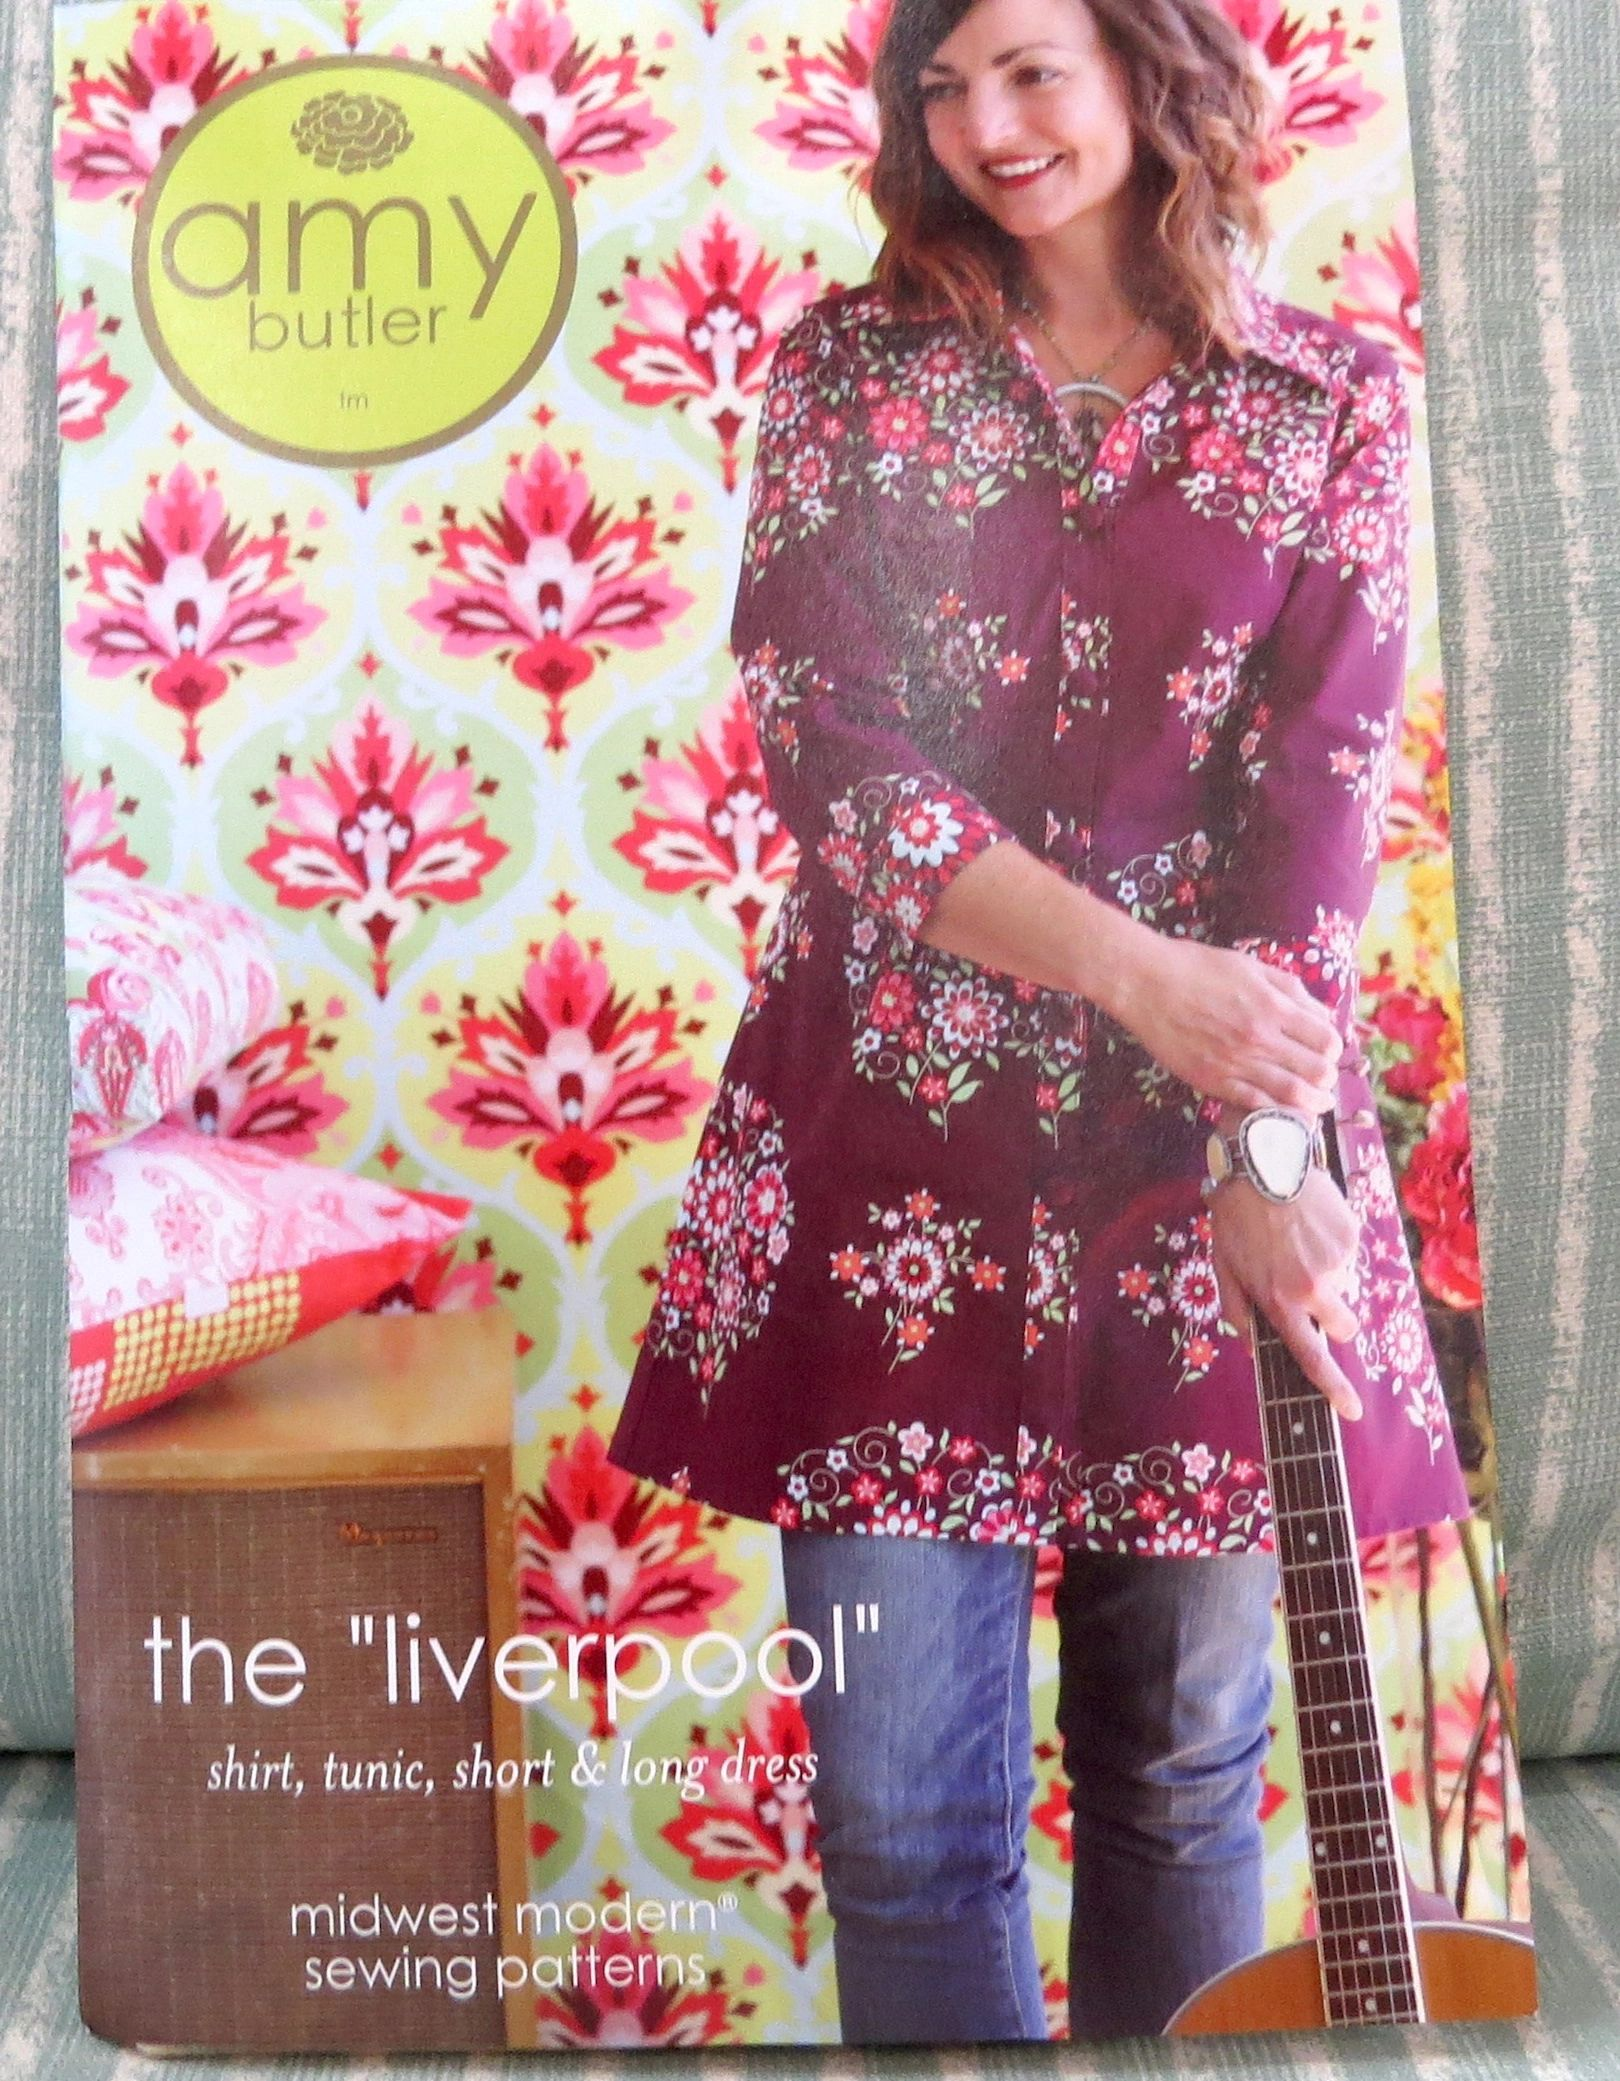 Liverpool Shirt/Tunic by Amy Butler